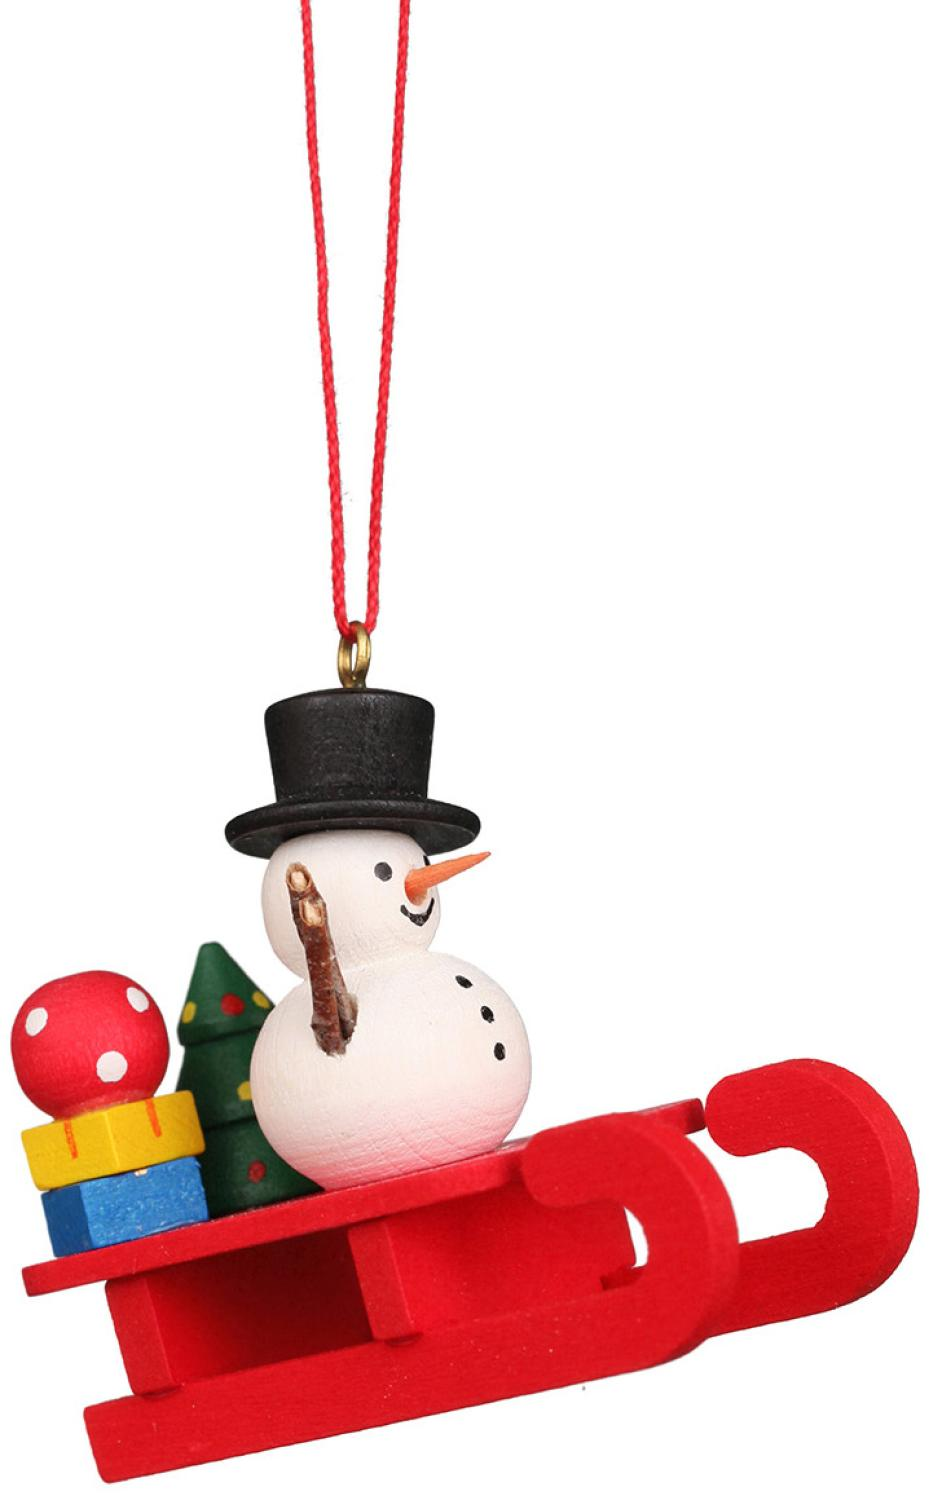 10-0432 - Christian Ulbricht Ornament - Snowman on Sled - 2